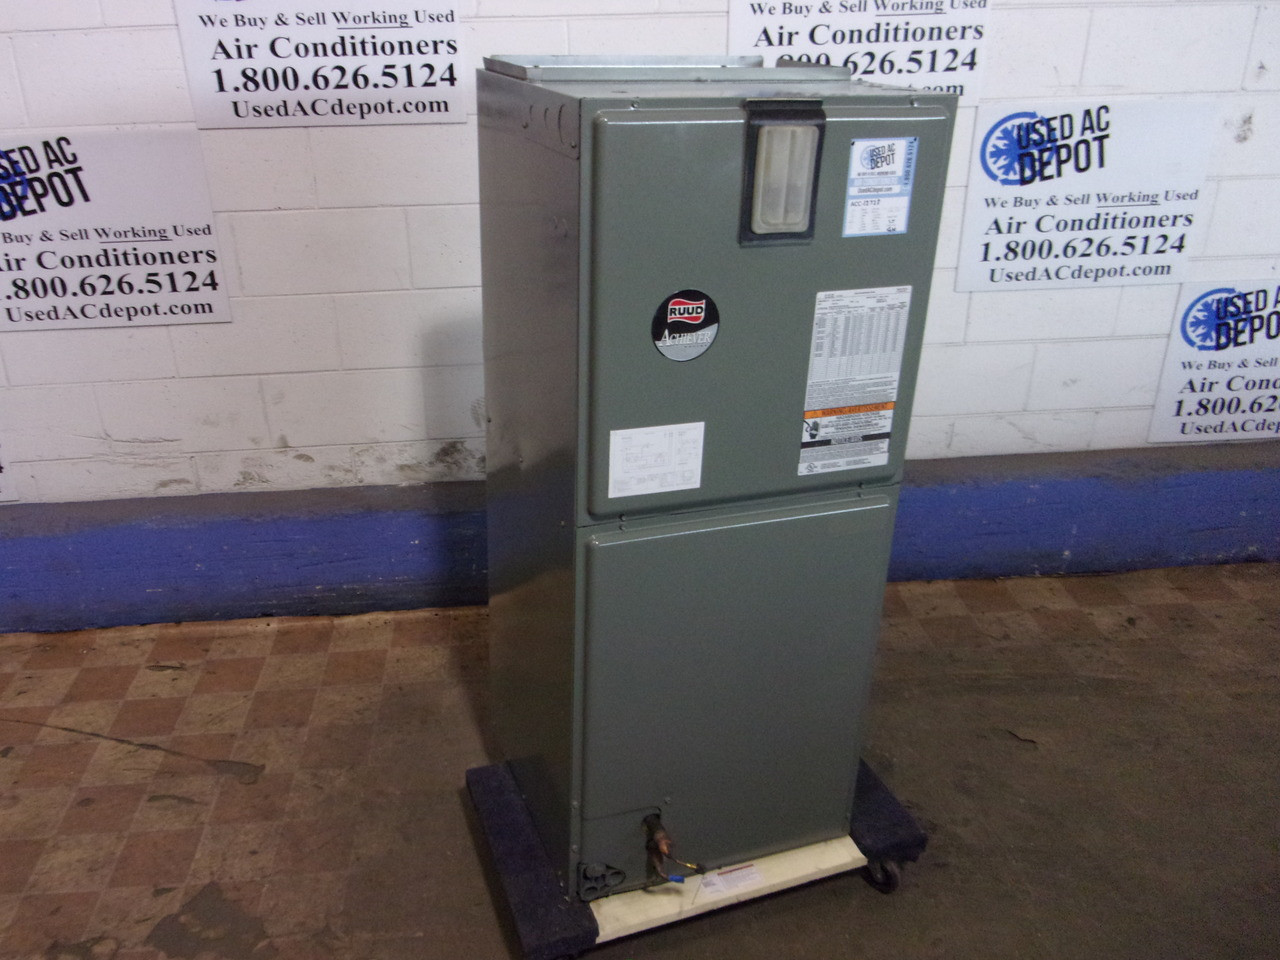 Uhsa Ruud Air Handler Schematic Diagram on